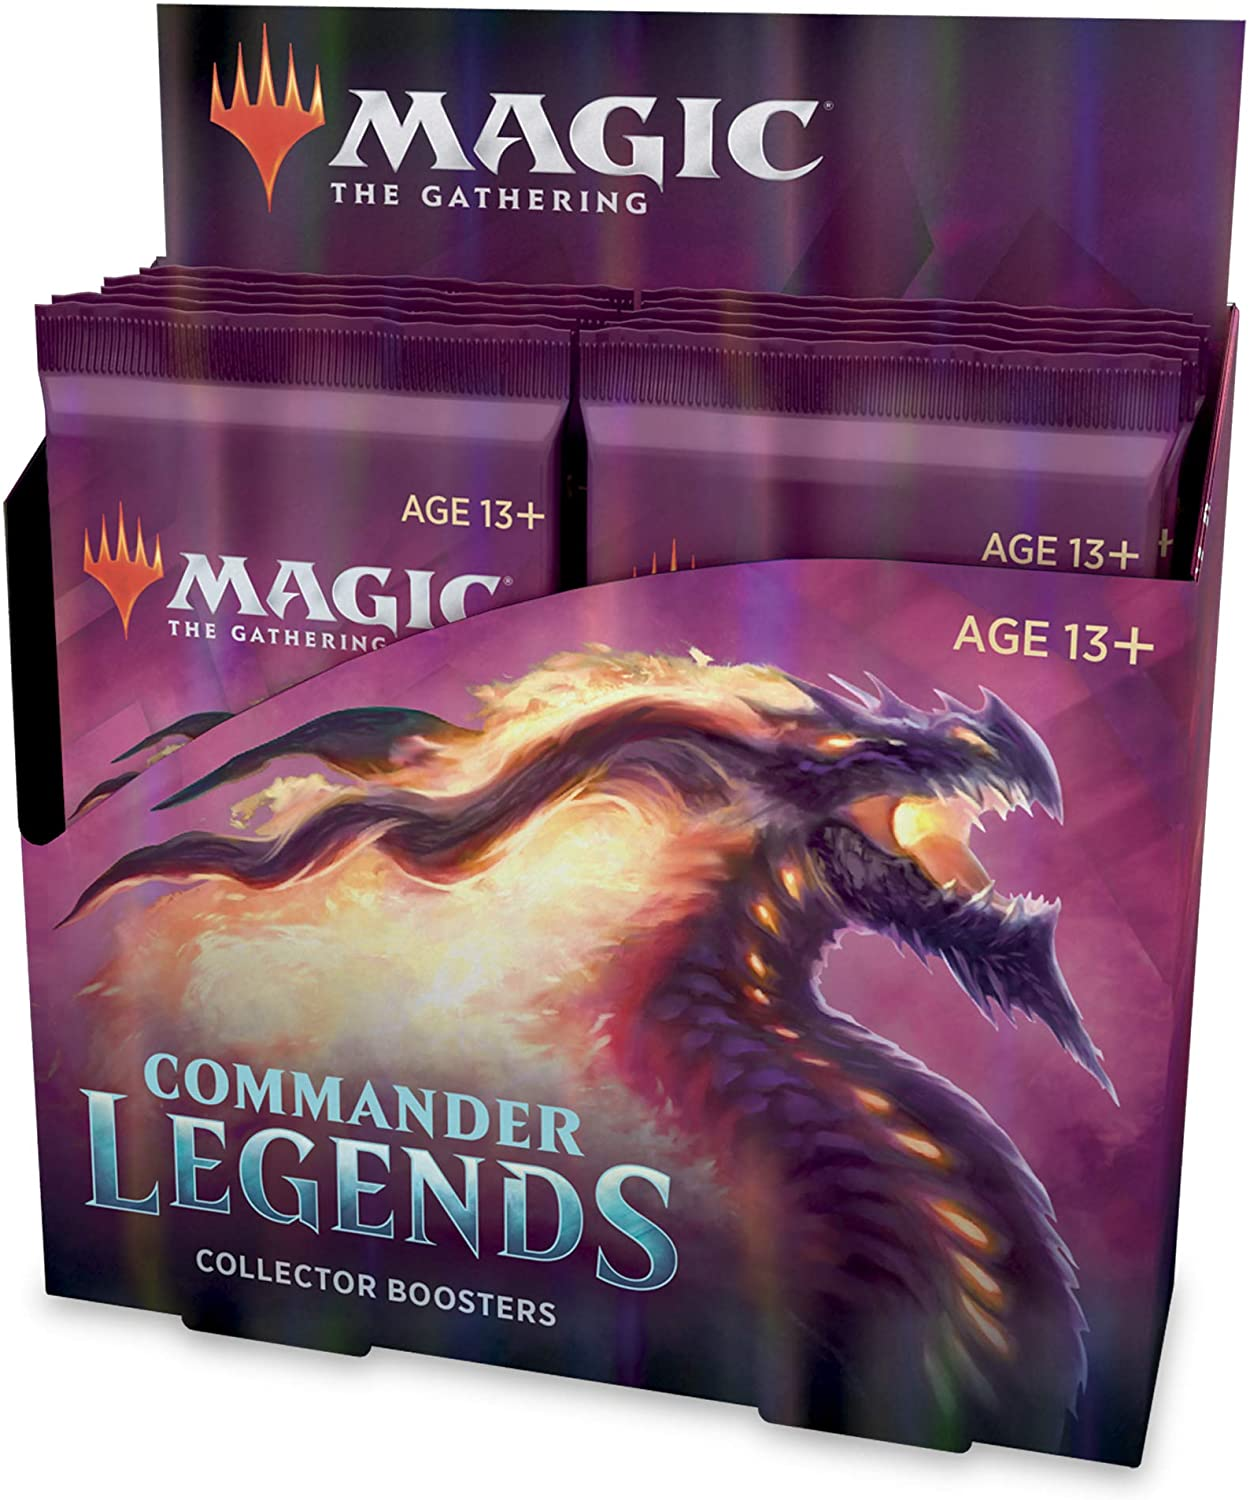 Commander legends Collector Booster box | D20 Games